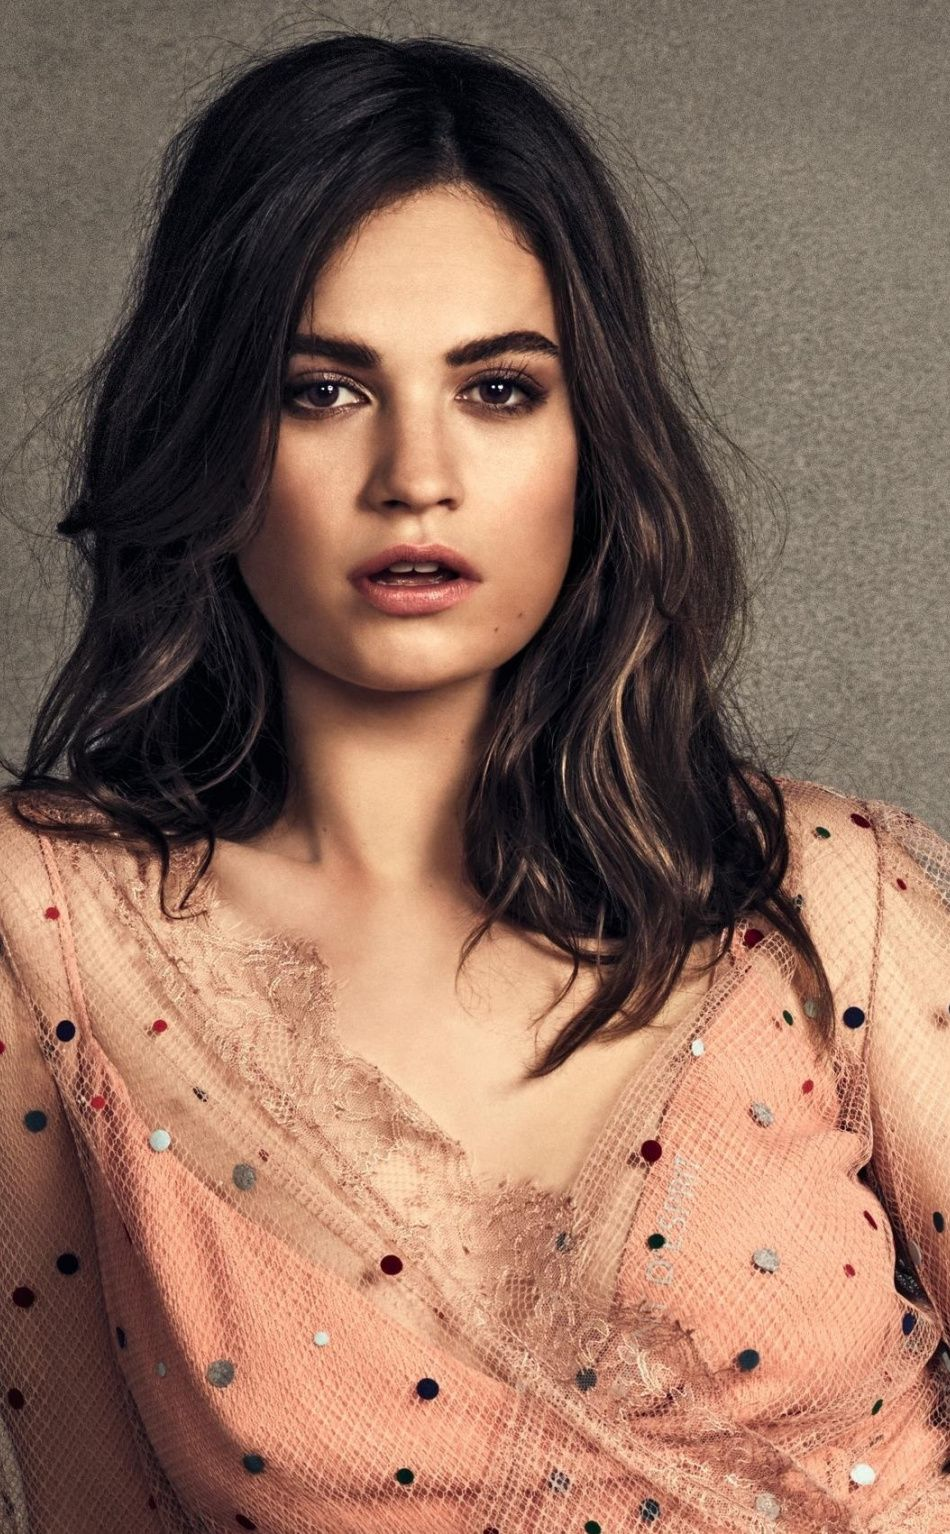 Lily James Bio Net Worth Age Height Husband Instagram Aesthetic Pastel Wallpaper Cute Wallpapers Aesthetic Iphone Wallpaper